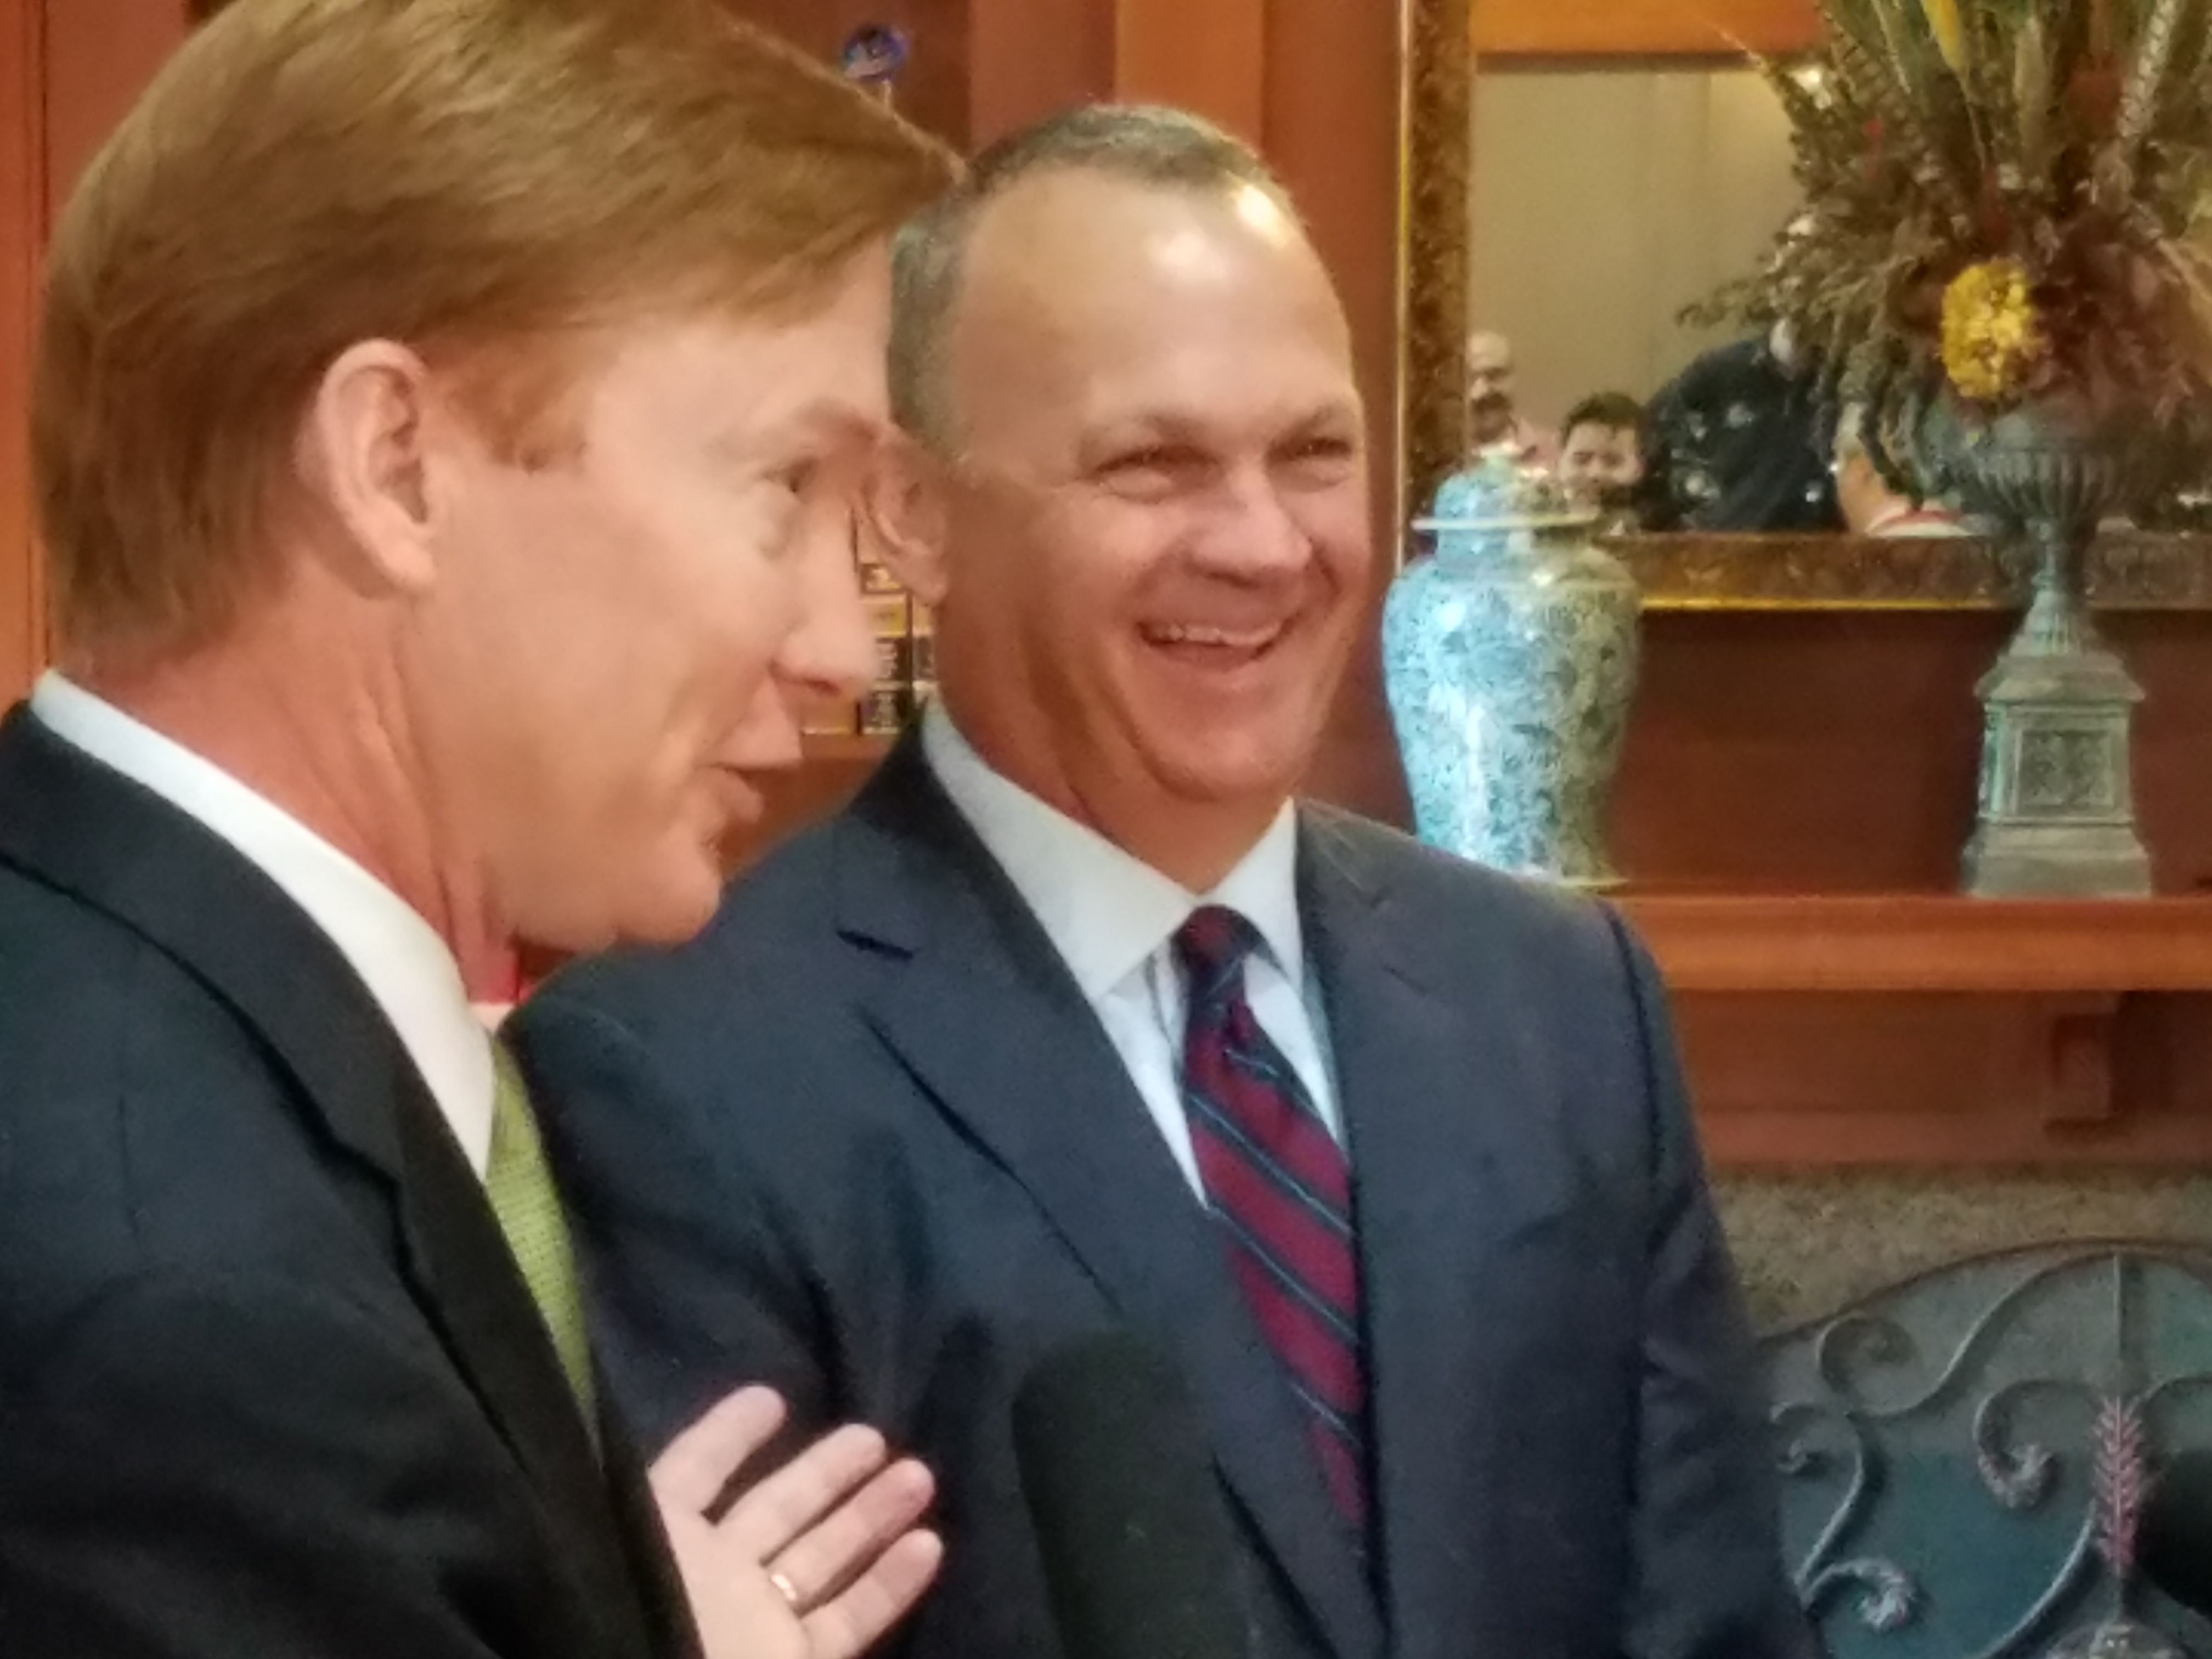 Florida House Speaker endorses Putnam for Governor